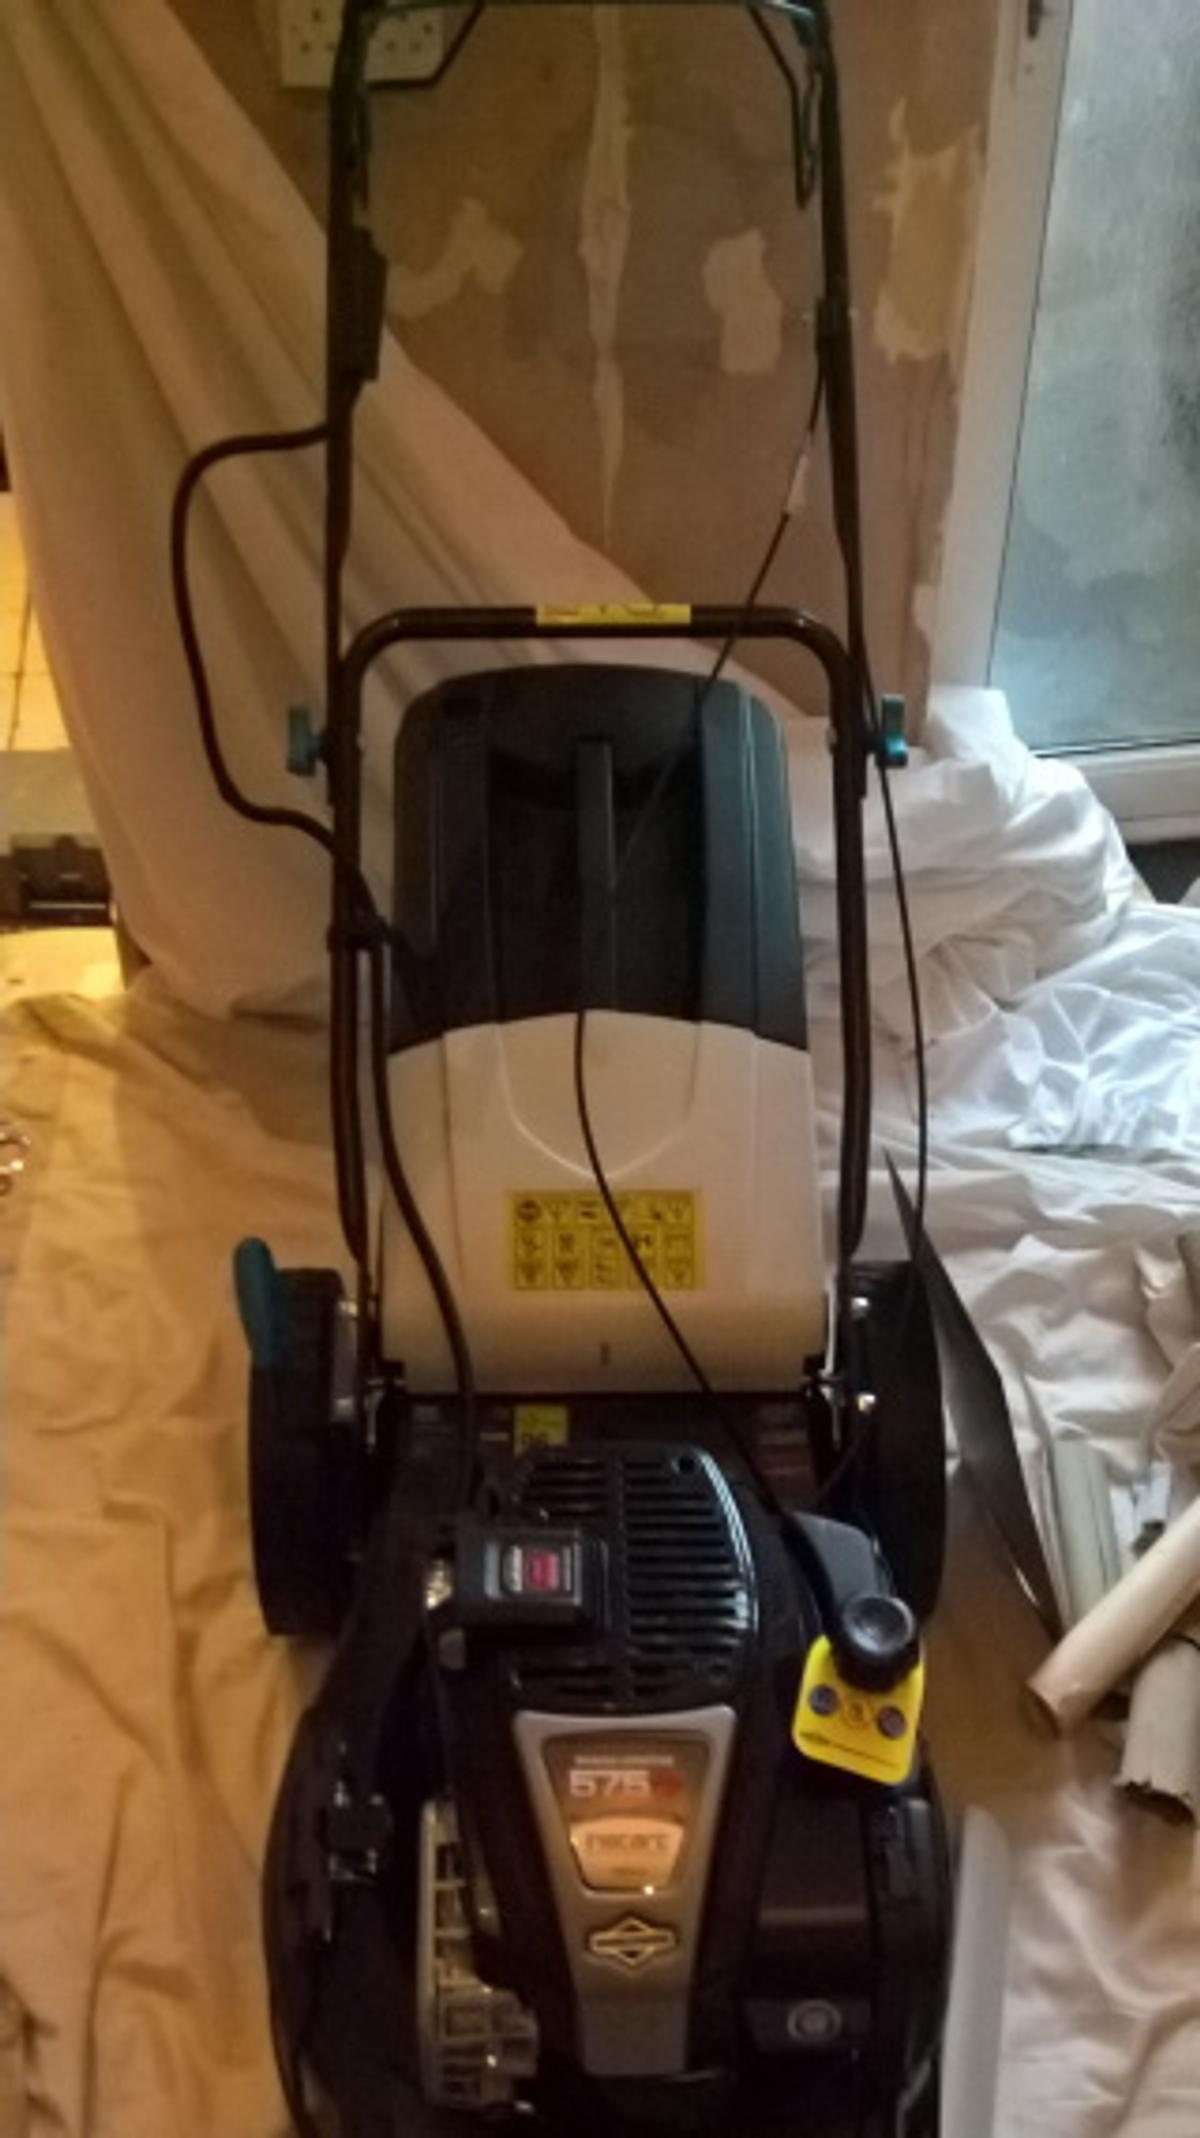 A Brand new self propelled lawnmower with self start technology RRP: £335 I want £200. Still in box..That is over a £100 Saving  Pics are of build from new in box to complete. It fully works and charges, excuse the room I am decorating  This MAC MLMP575SP46 self-propelled petrol lawnmower is ideal for large lawns (up to 1000 m²).  Cutting width 460mm, 10 cutting heights Collection capacity 60L Briggs & Stratton 575 iS 4-stroke 2200 W Petrol 3 in 1 function Plastic and fabric collection bag